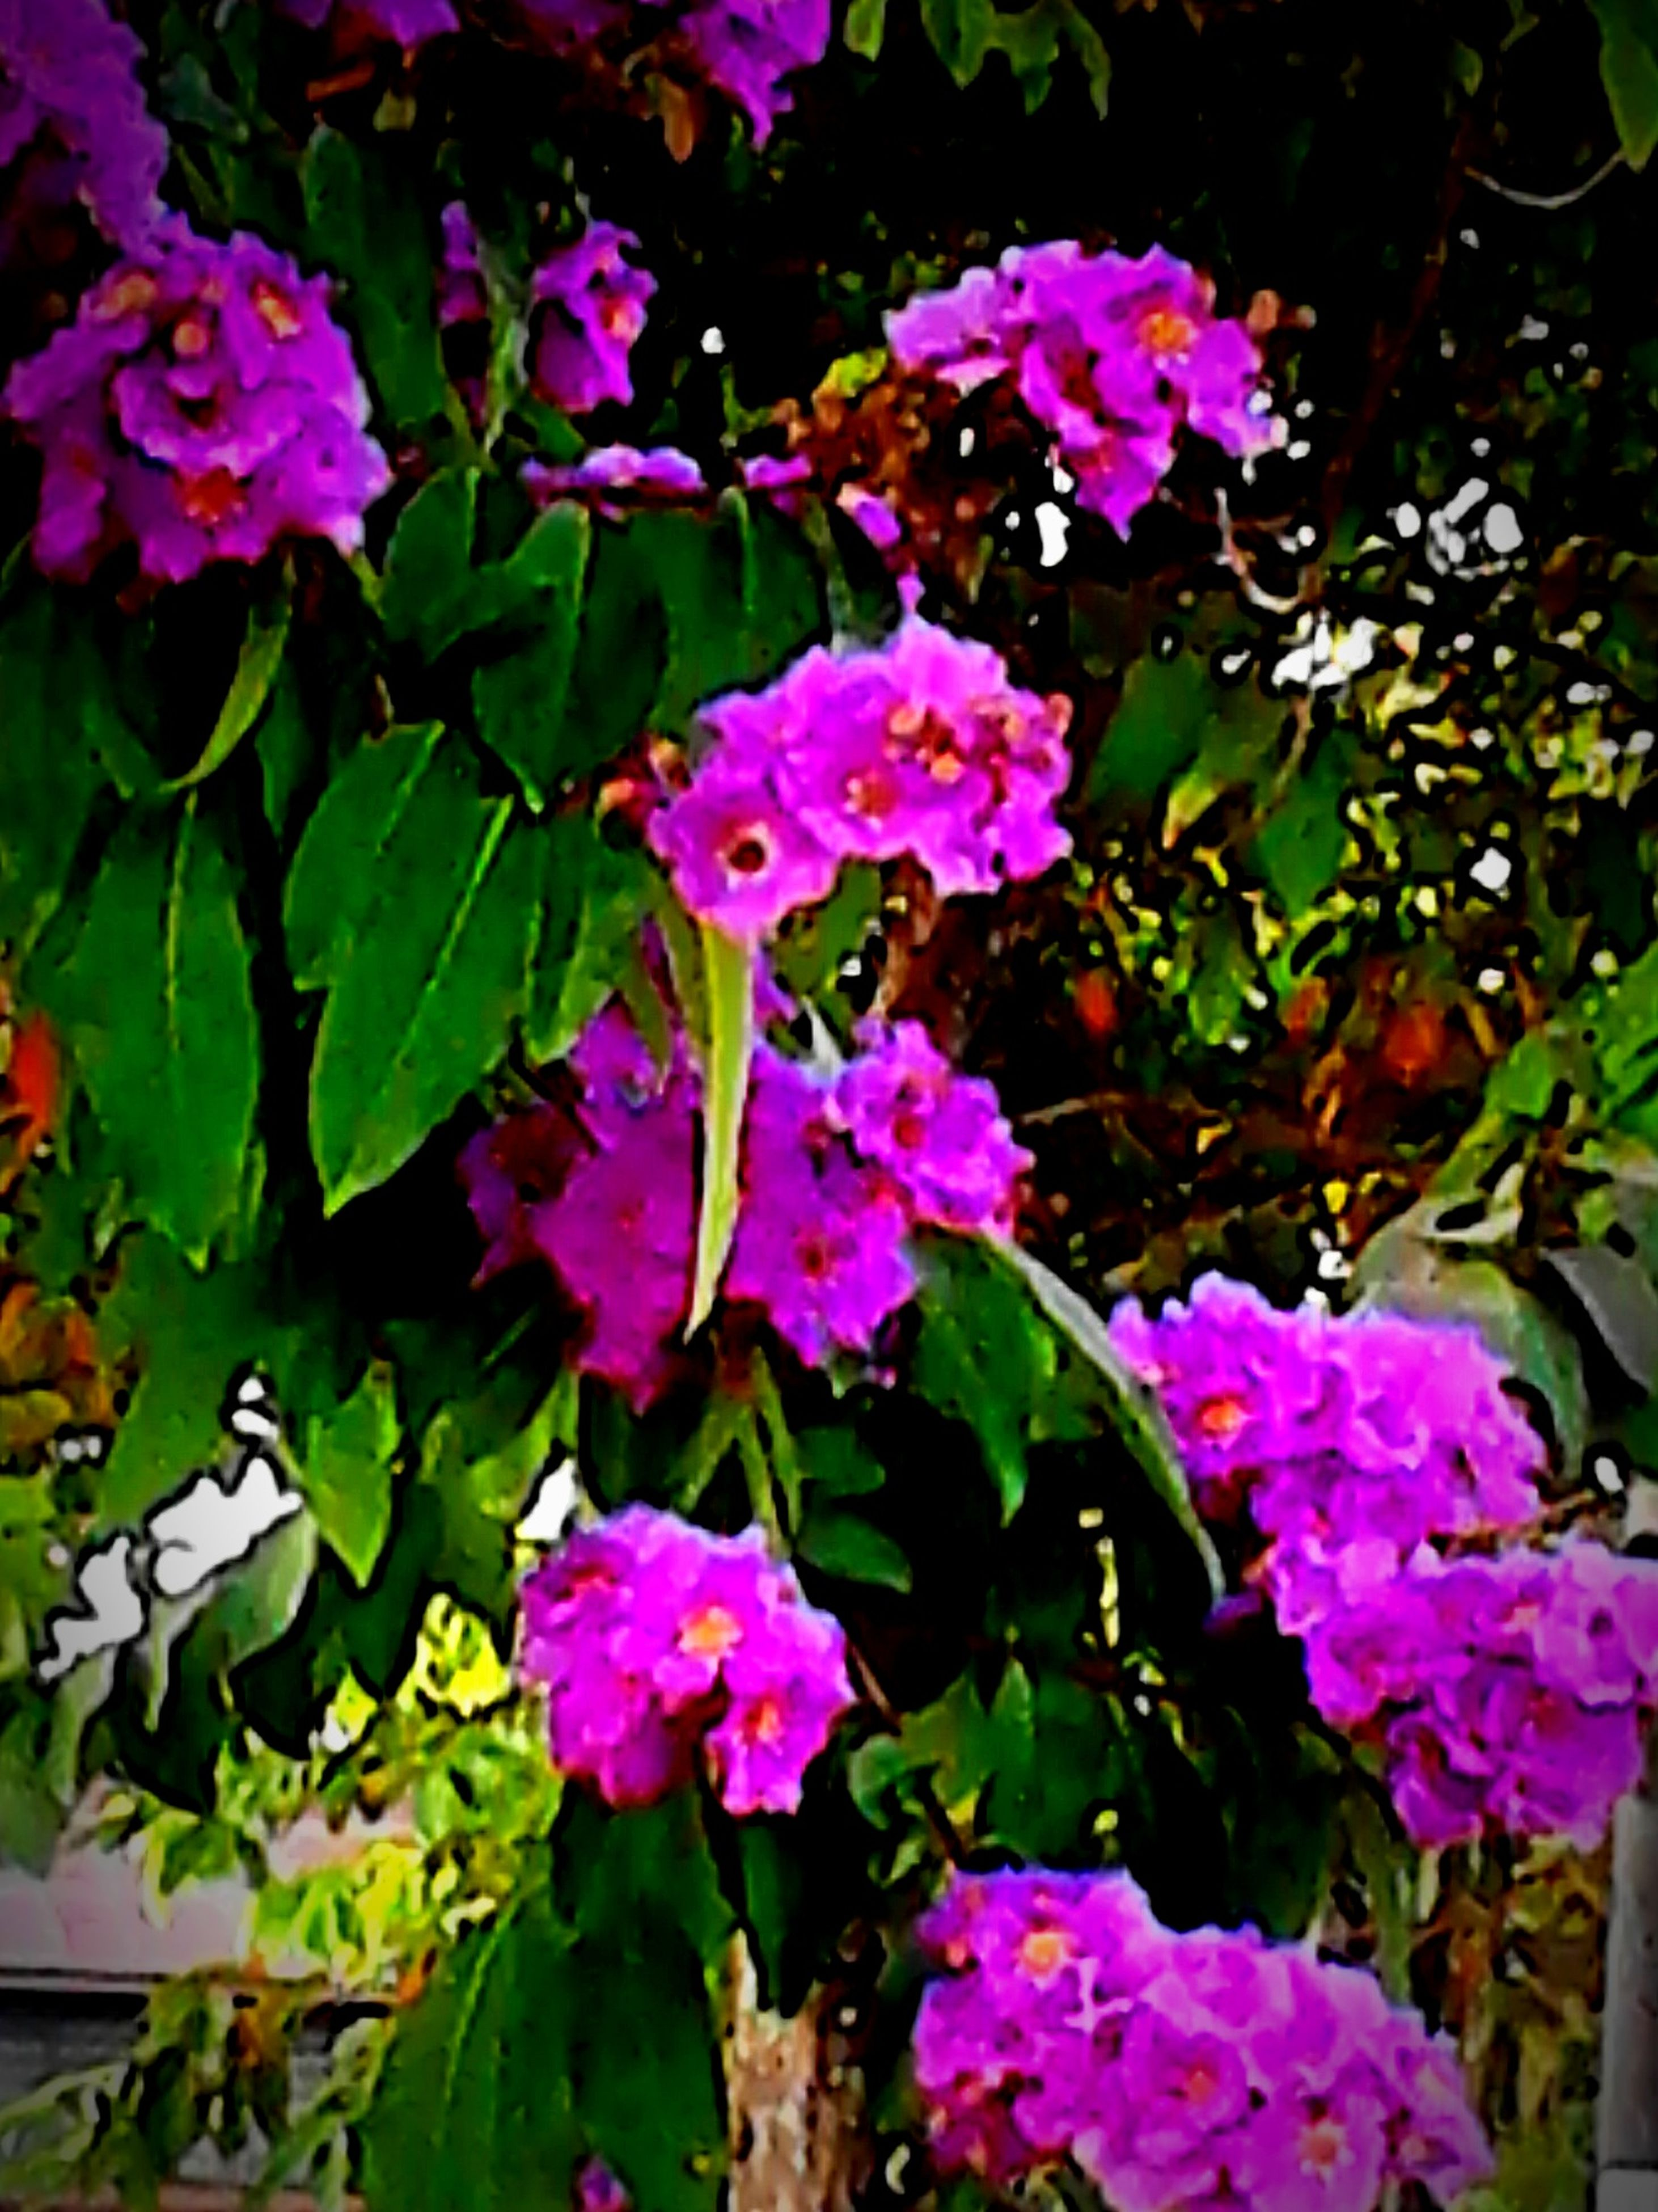 flower, freshness, petal, fragility, growth, leaf, pink color, plant, beauty in nature, purple, blooming, flower head, nature, high angle view, in bloom, outdoors, green color, park - man made space, day, no people